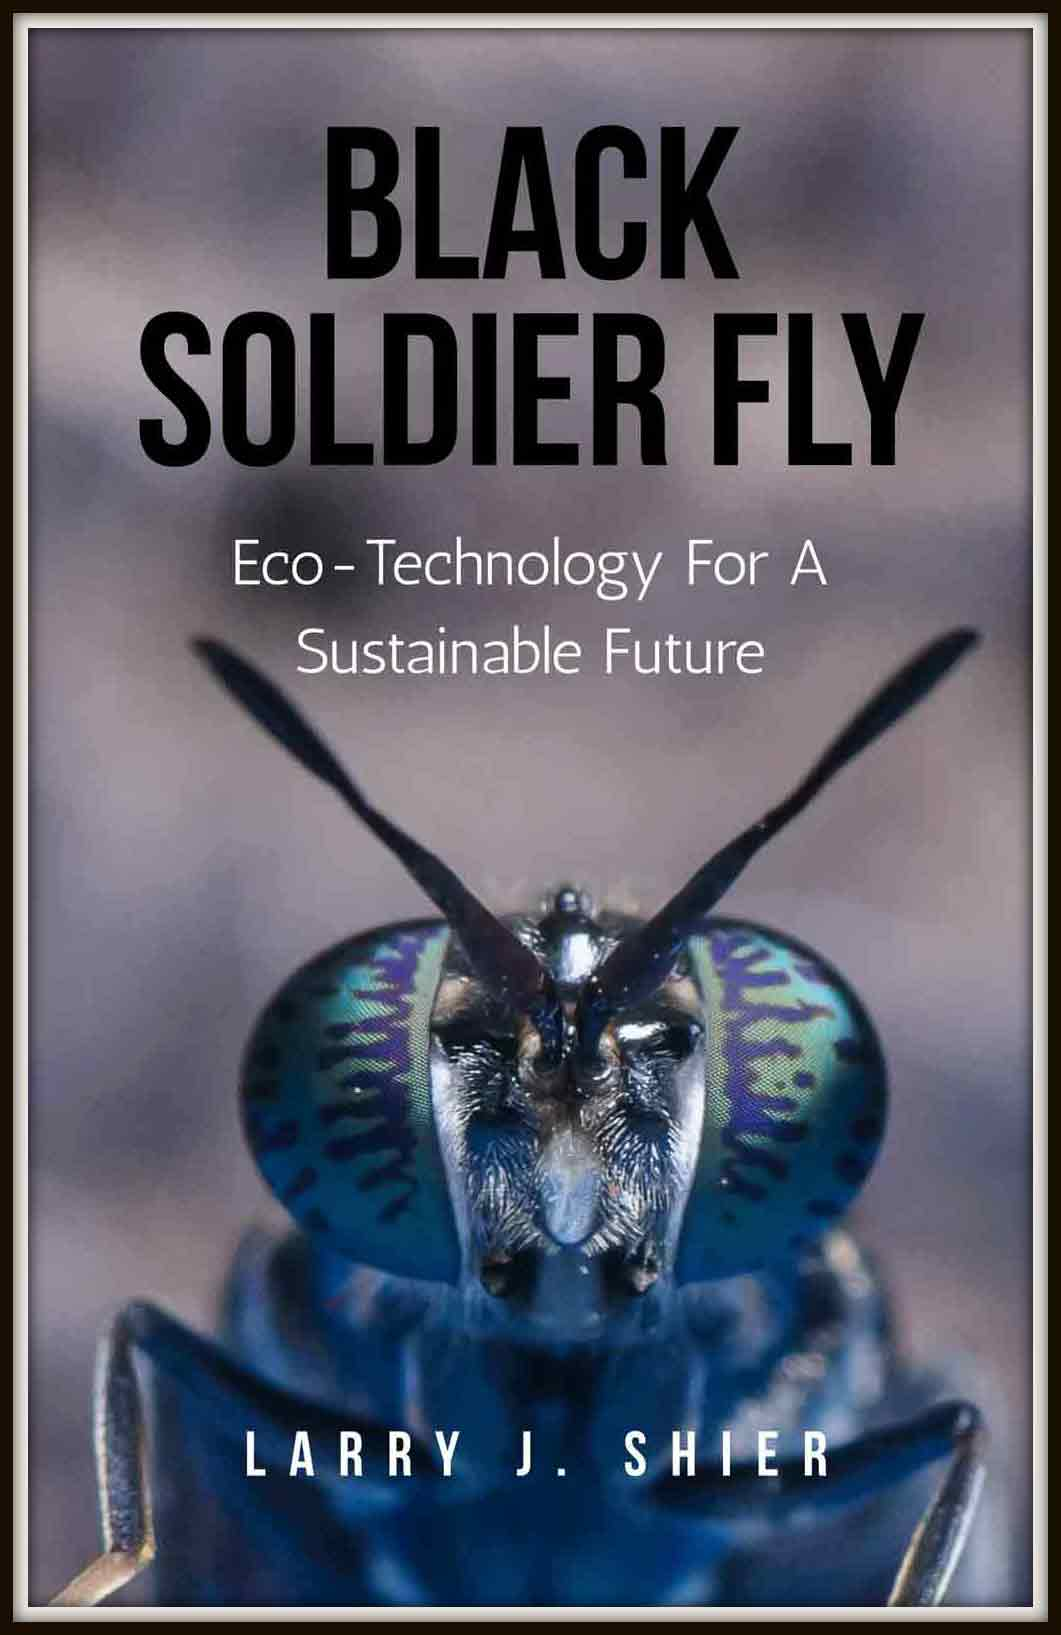 Black Soldier Fly, Larry Shier